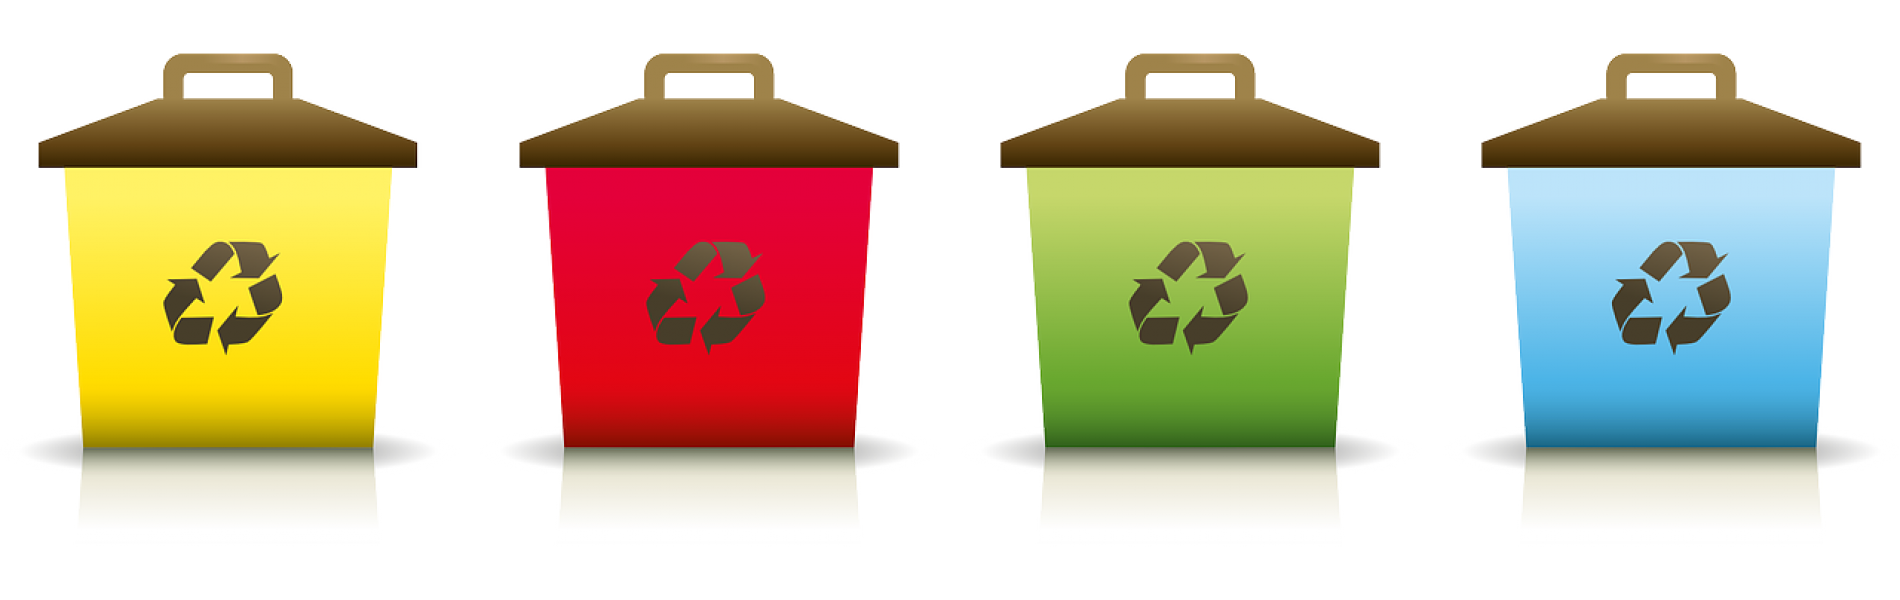 Trash cans for recycling